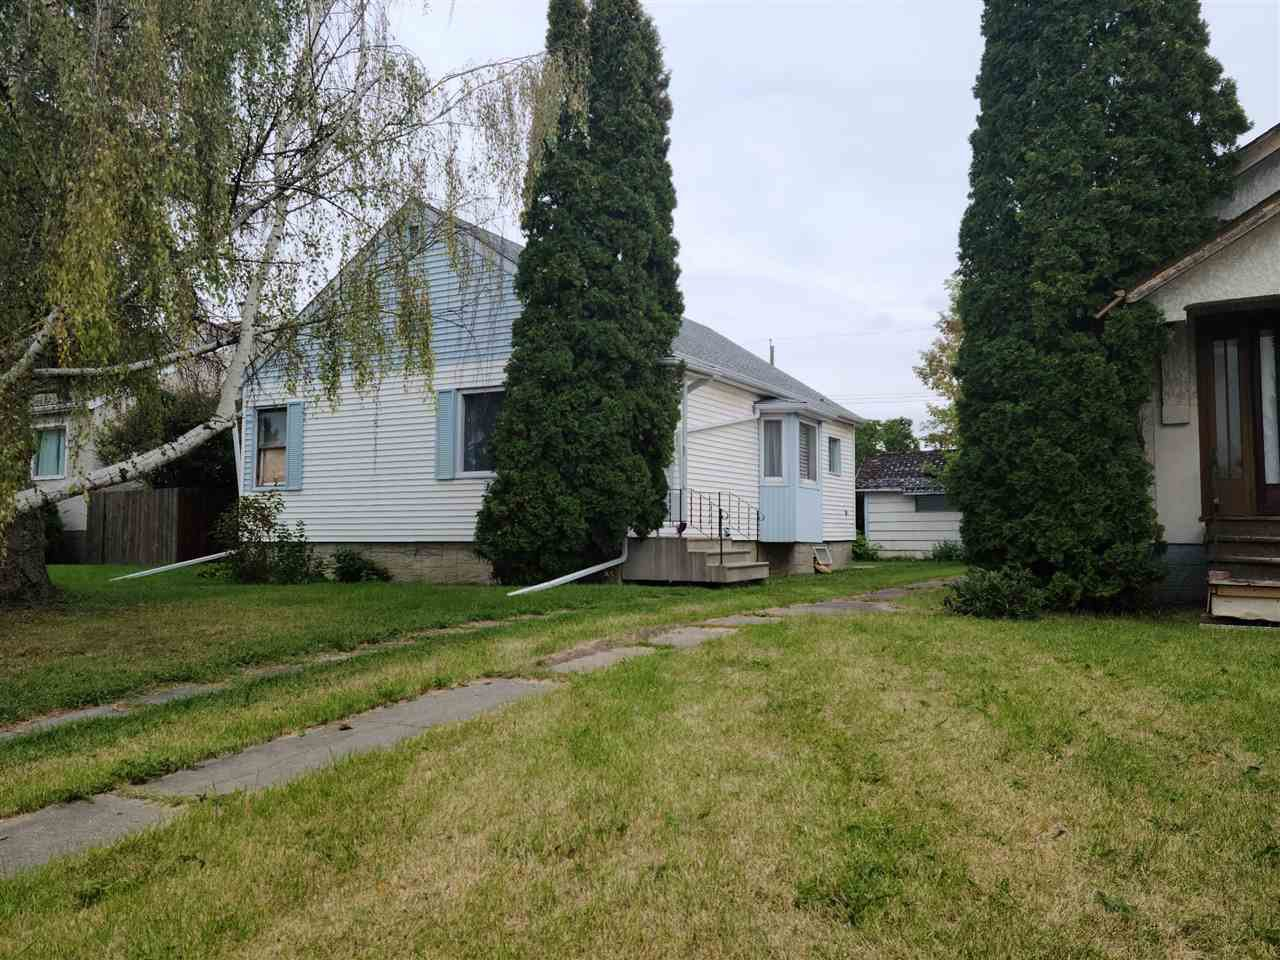 Main Photo: 12719 130 Street in Edmonton: Zone 01 House for sale : MLS®# E4214219